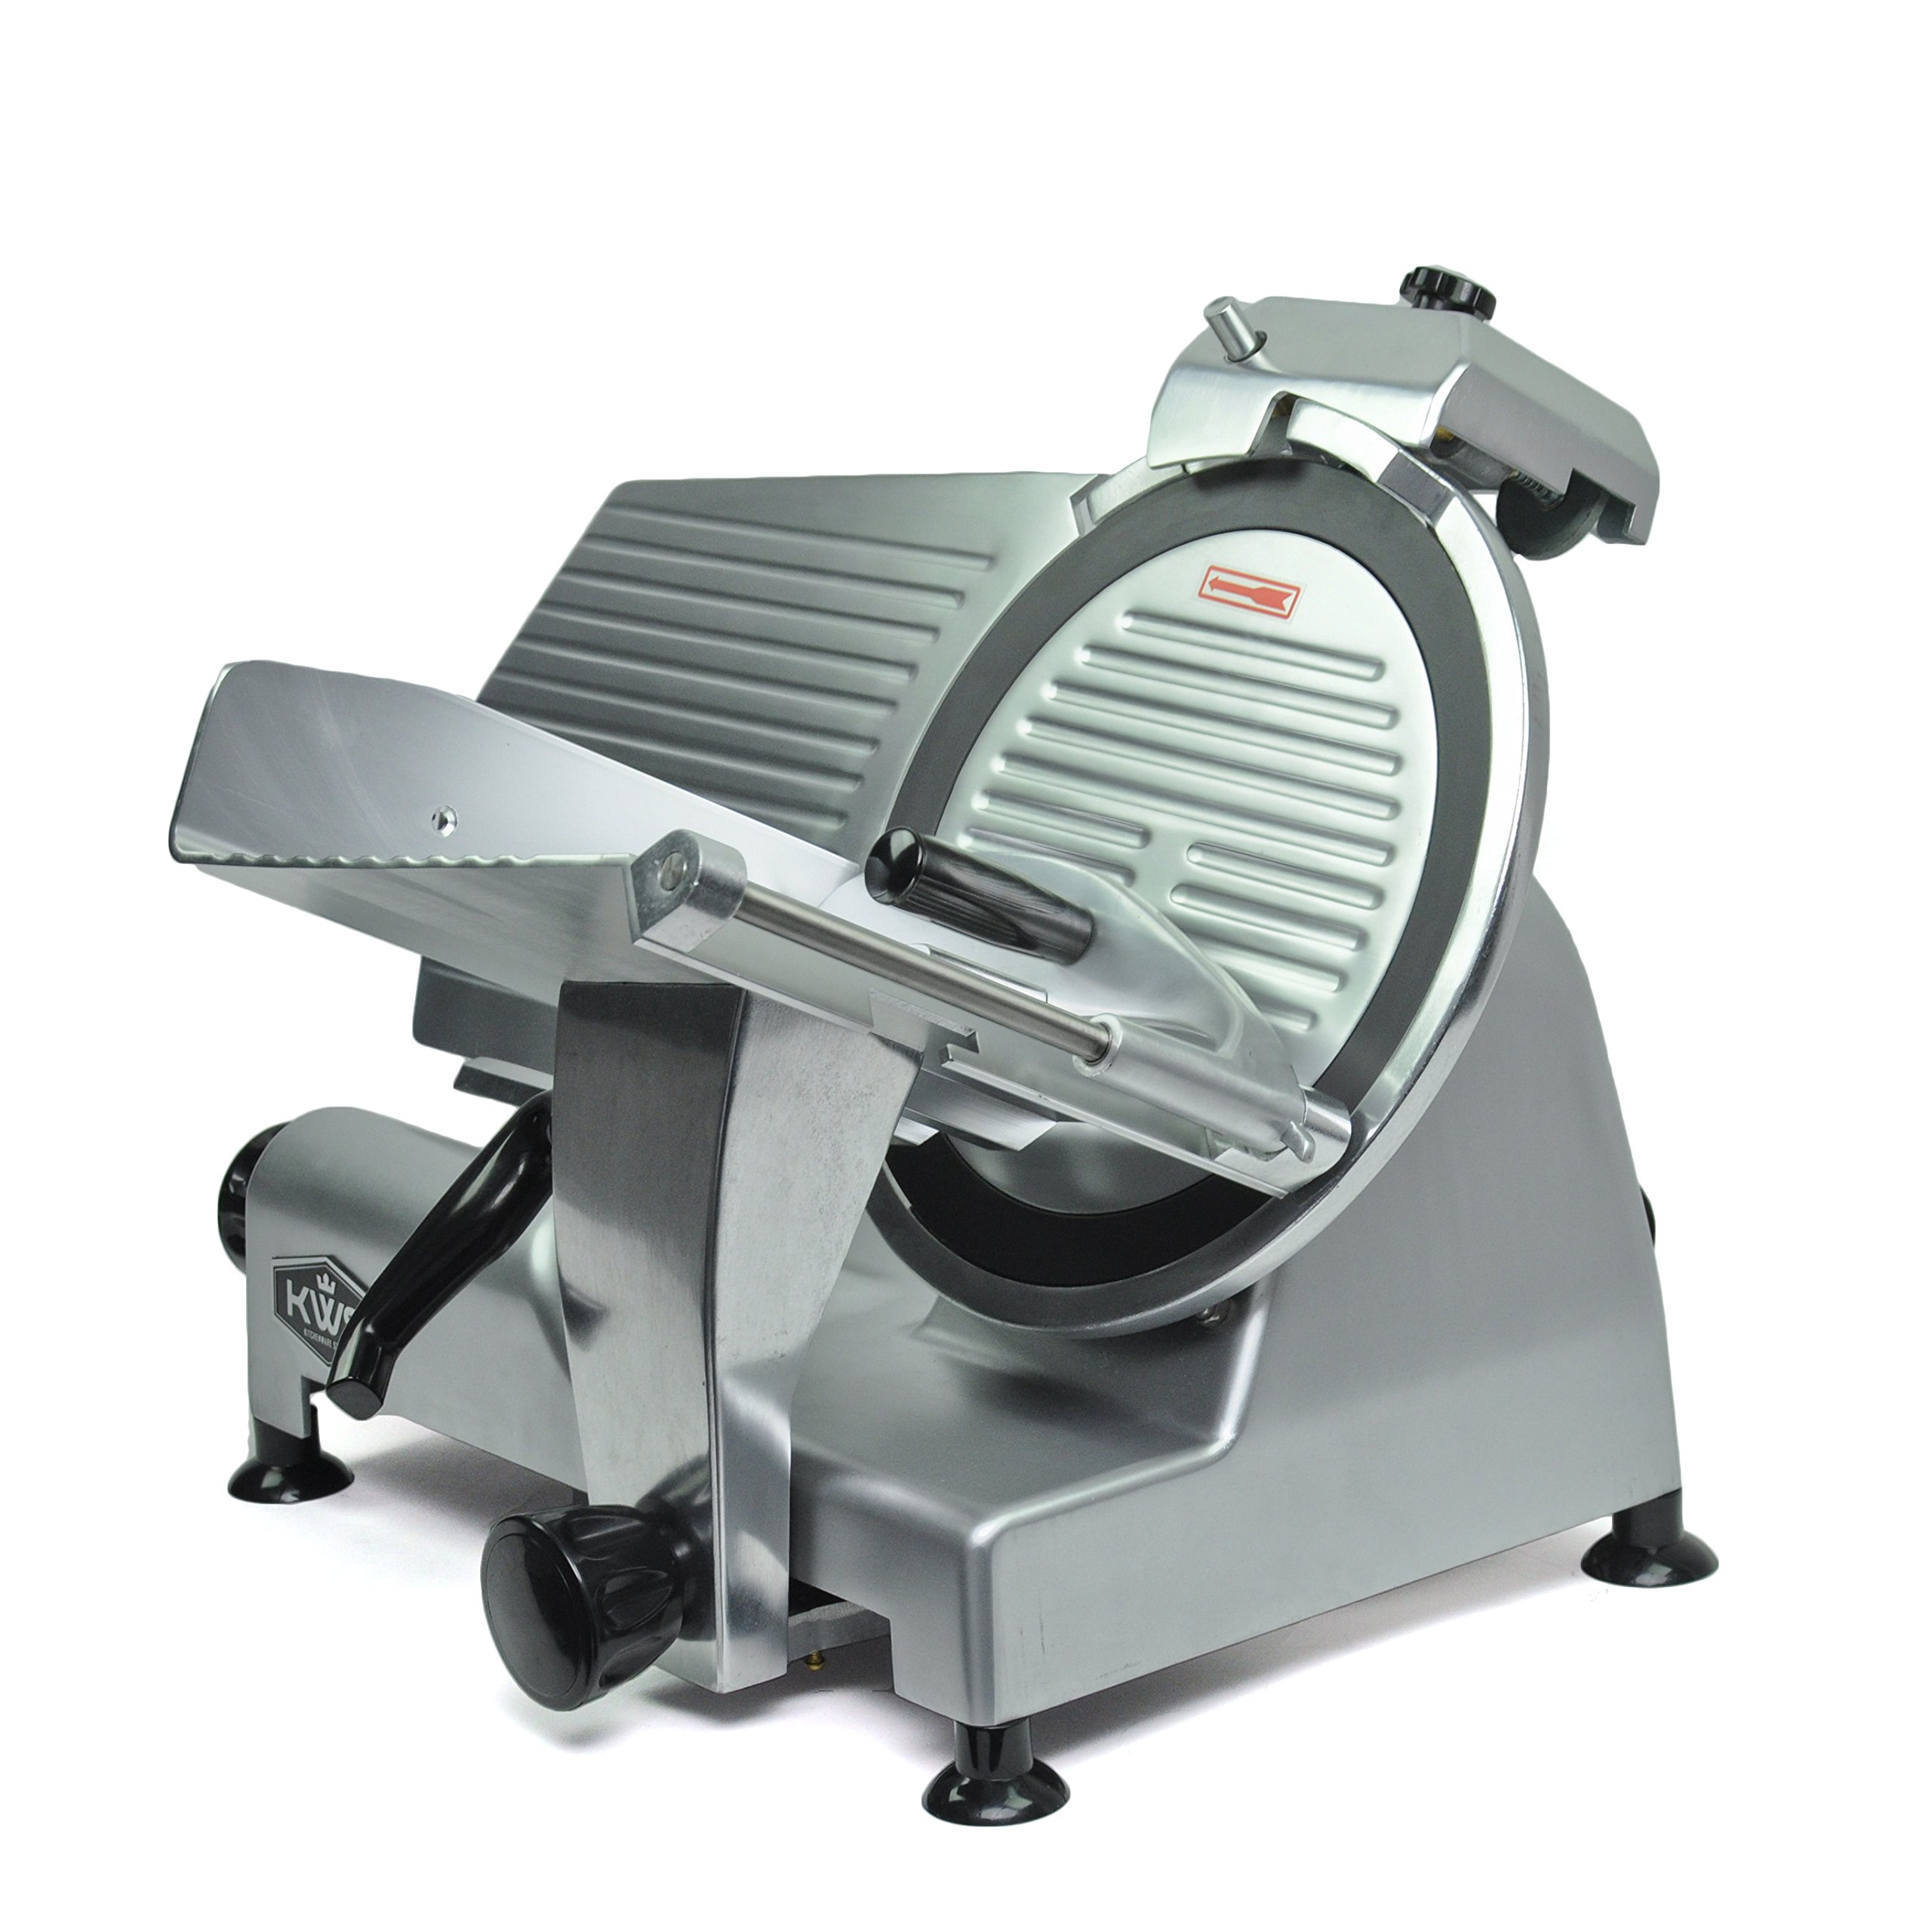 KWS Premium Commercial 420w Electric Meat Slicer 12'' Non-sticky Teflon Blade, Frozen Meat/ Cheese/ Food Slicer Low Noises